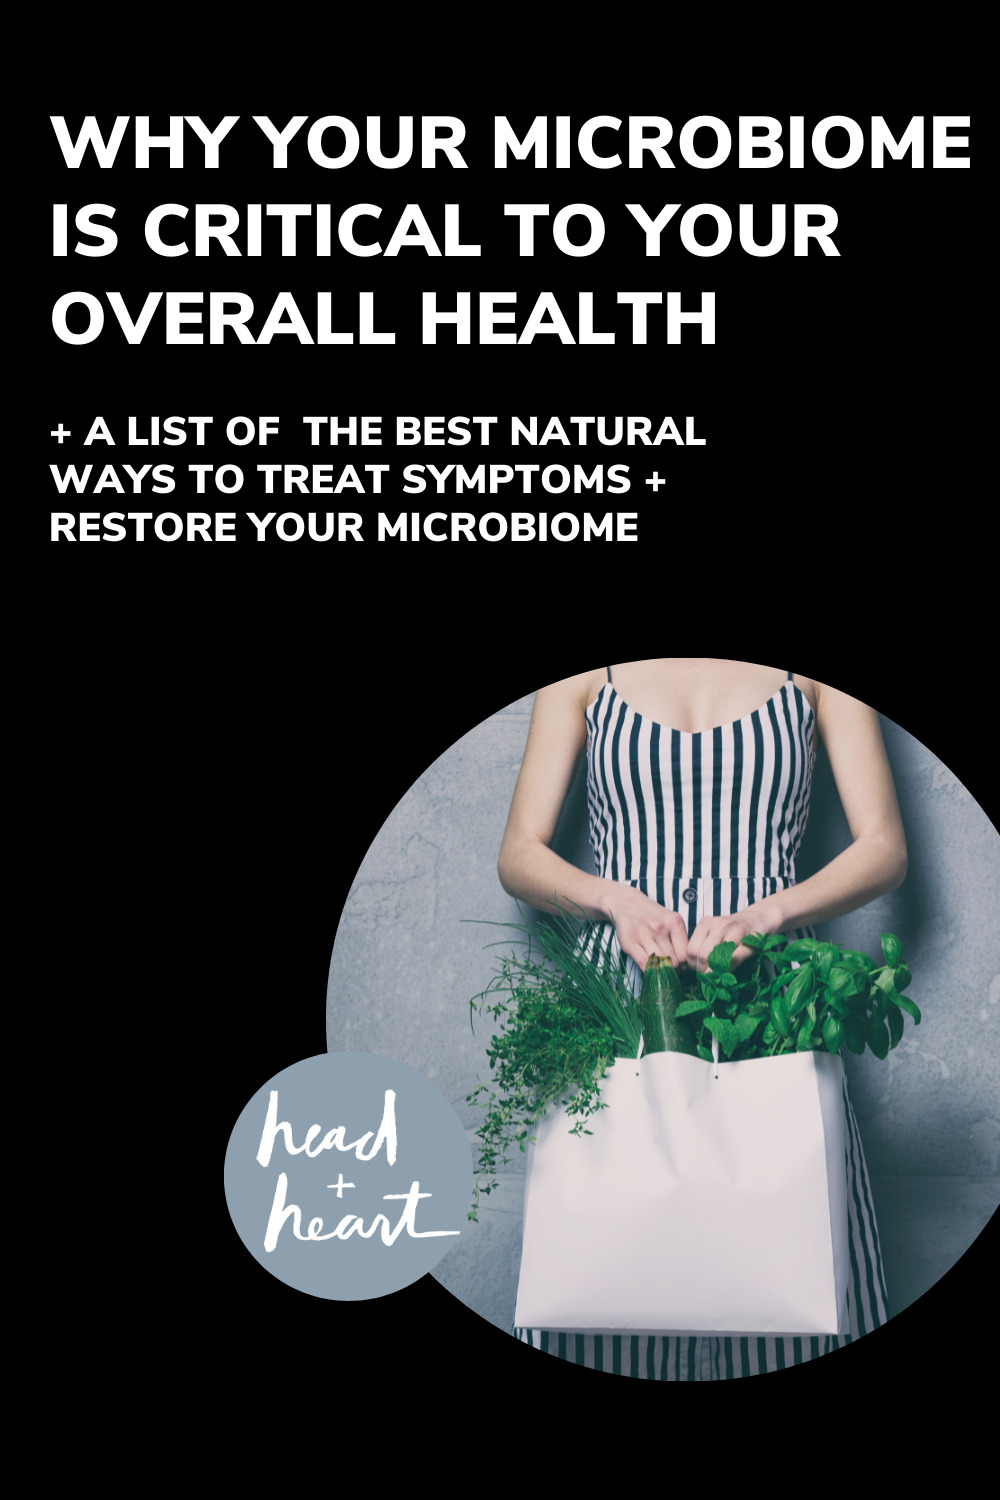 Why Your Microbiome is Central to Your Health | Head + Heart